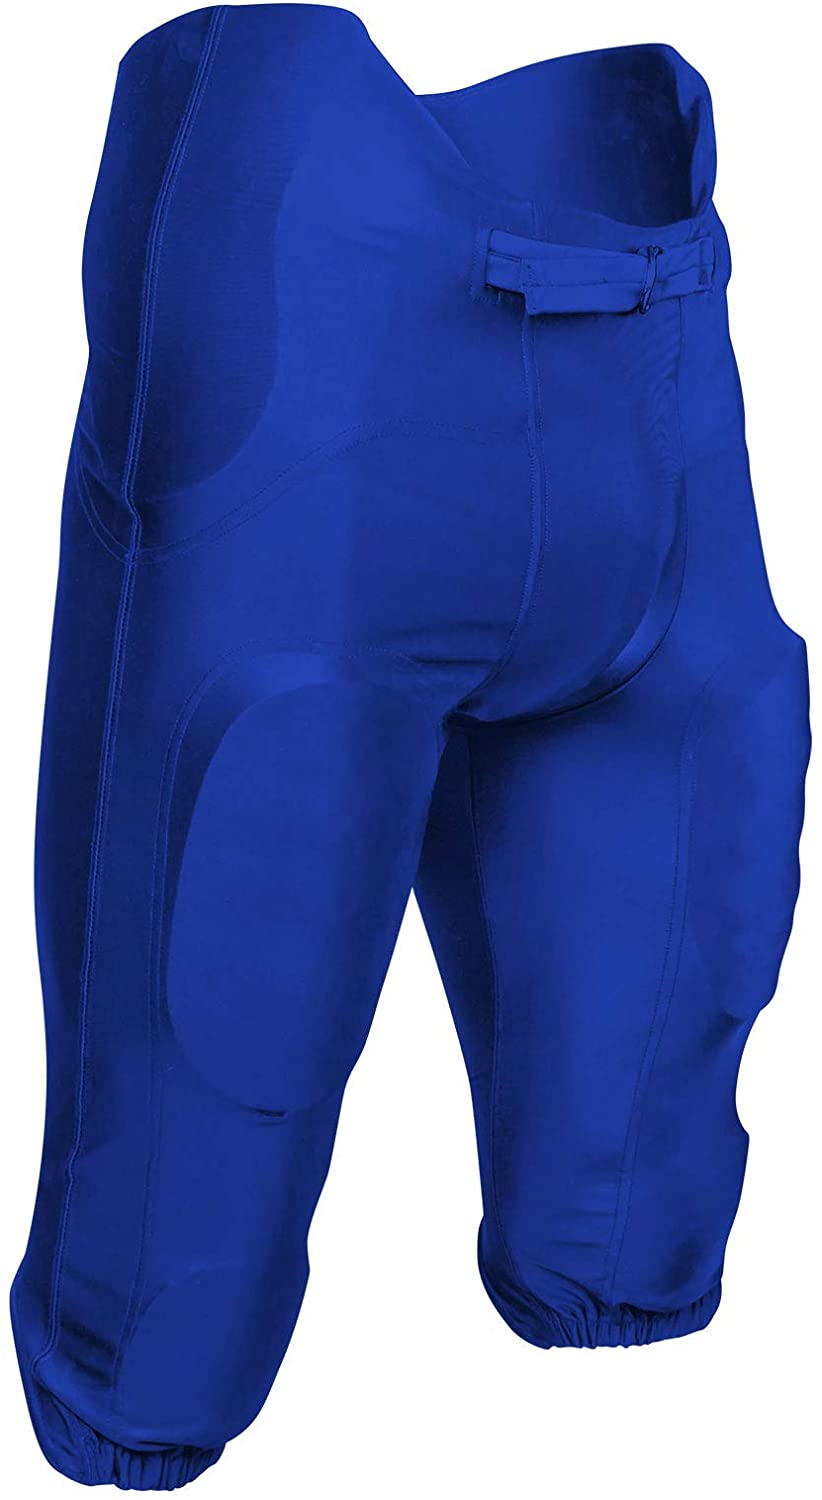 CHAMPRO Bootleg 2 Integrated Polyester/Spandex Football Pant